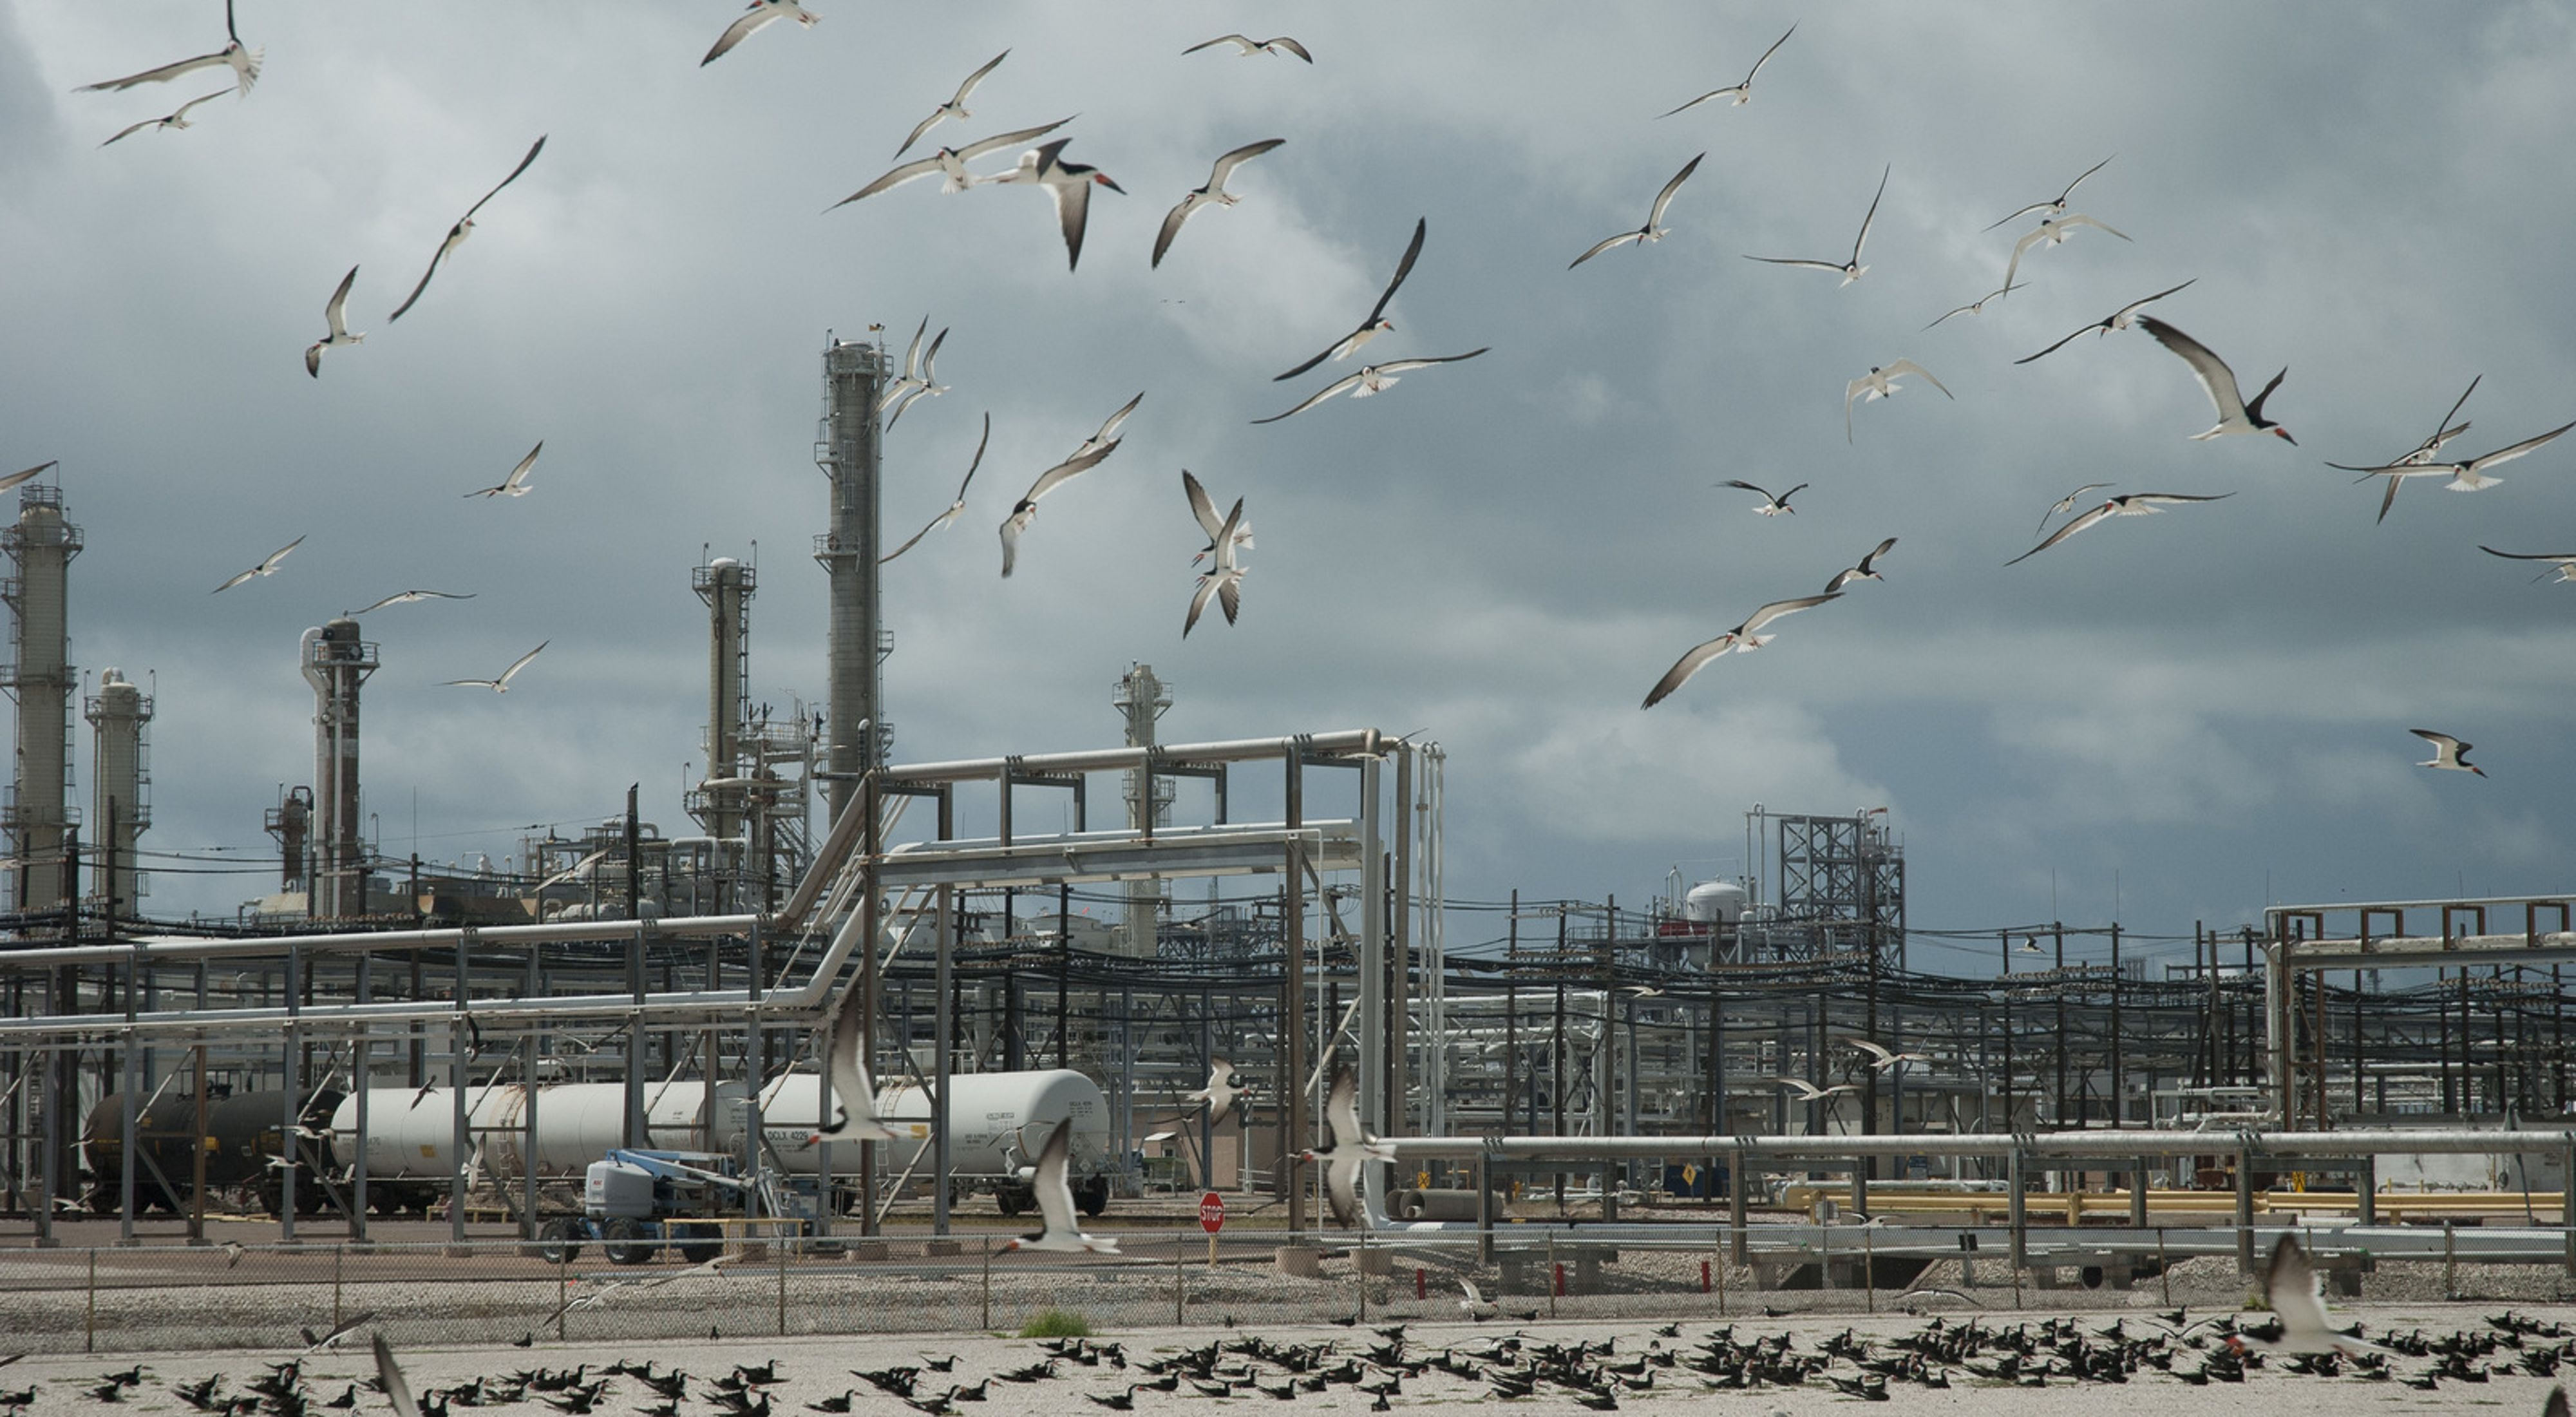 Birds fly around metal pipes and machinery.